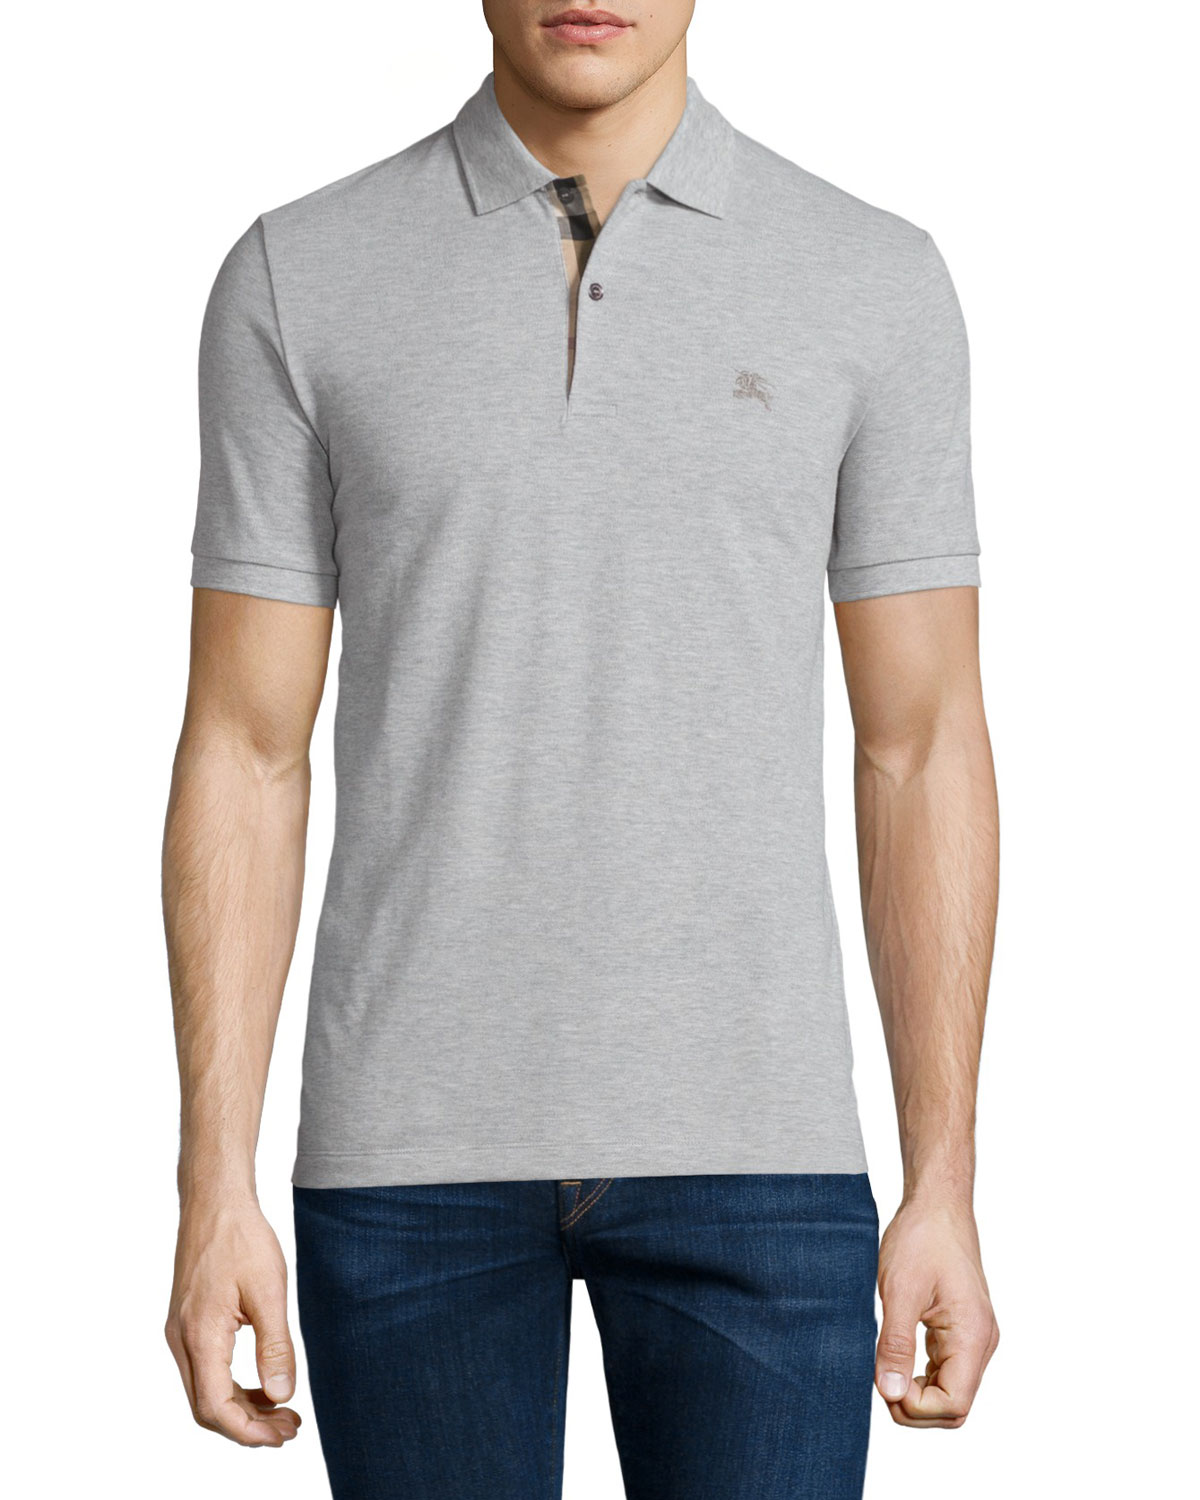 Short-Sleeve Pique Polo Shirt, Pale Gray